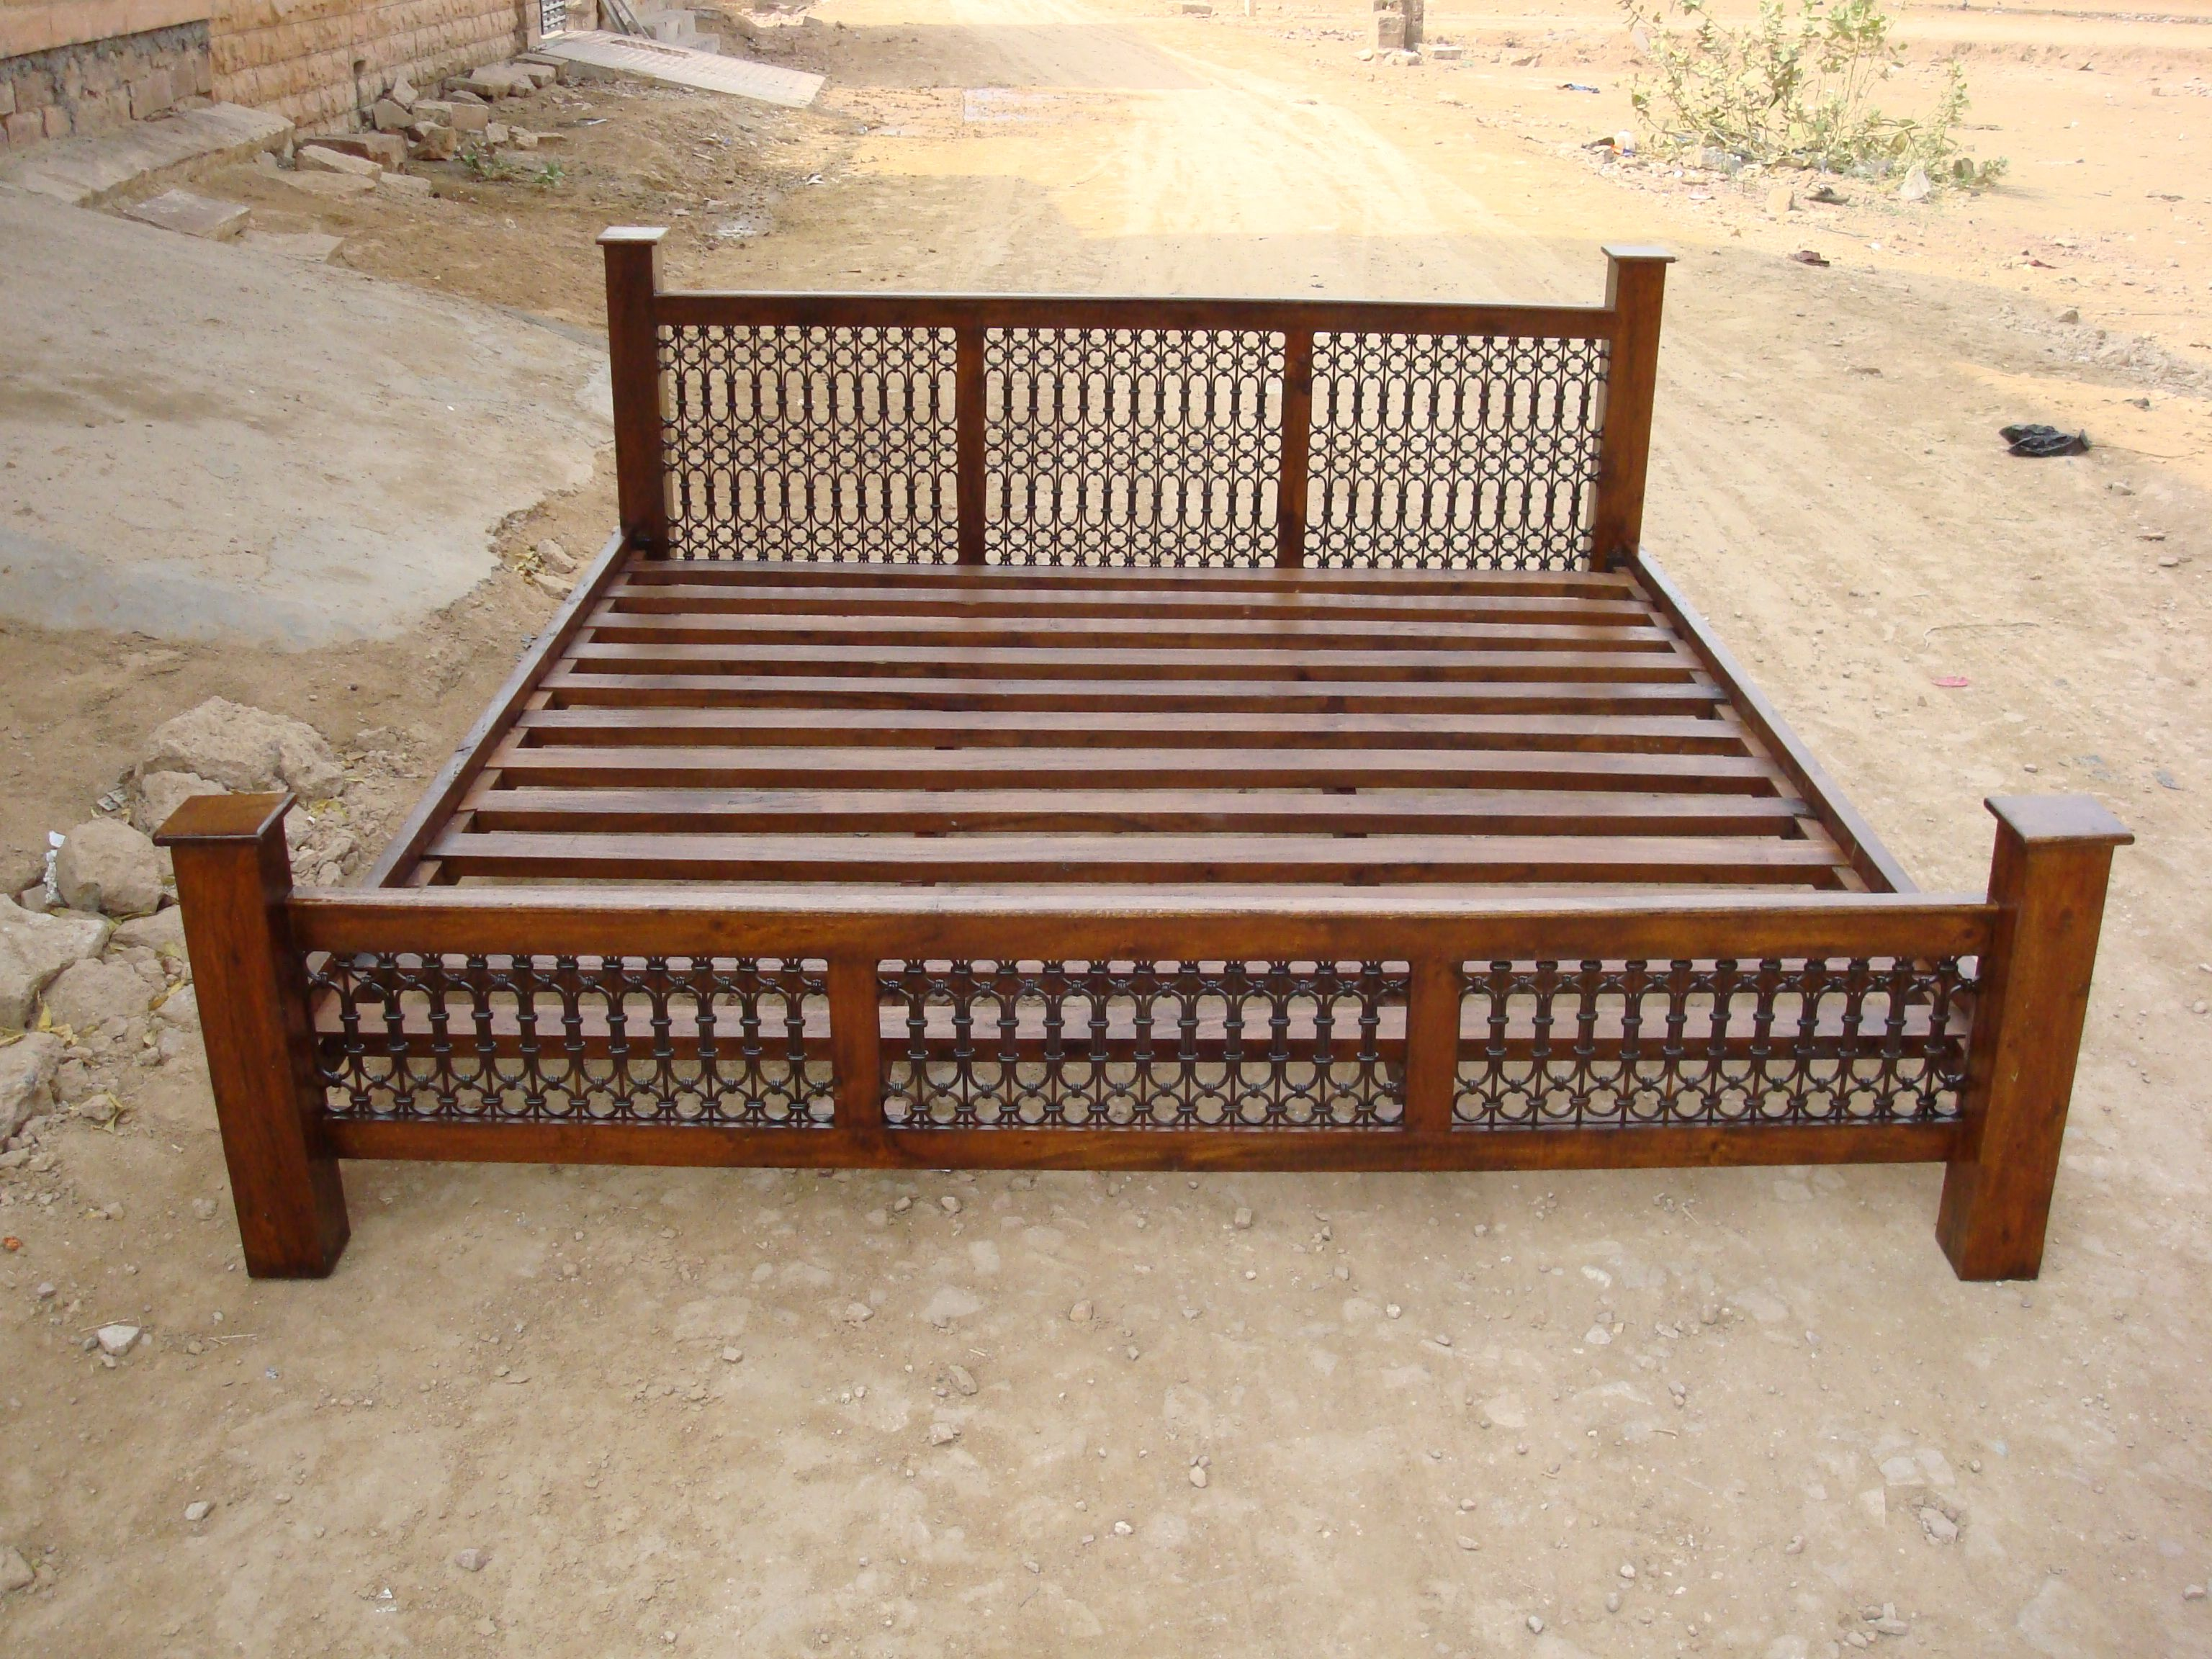 Indian Wooden Storage Bed Wooden Double Bed Wooden Beds